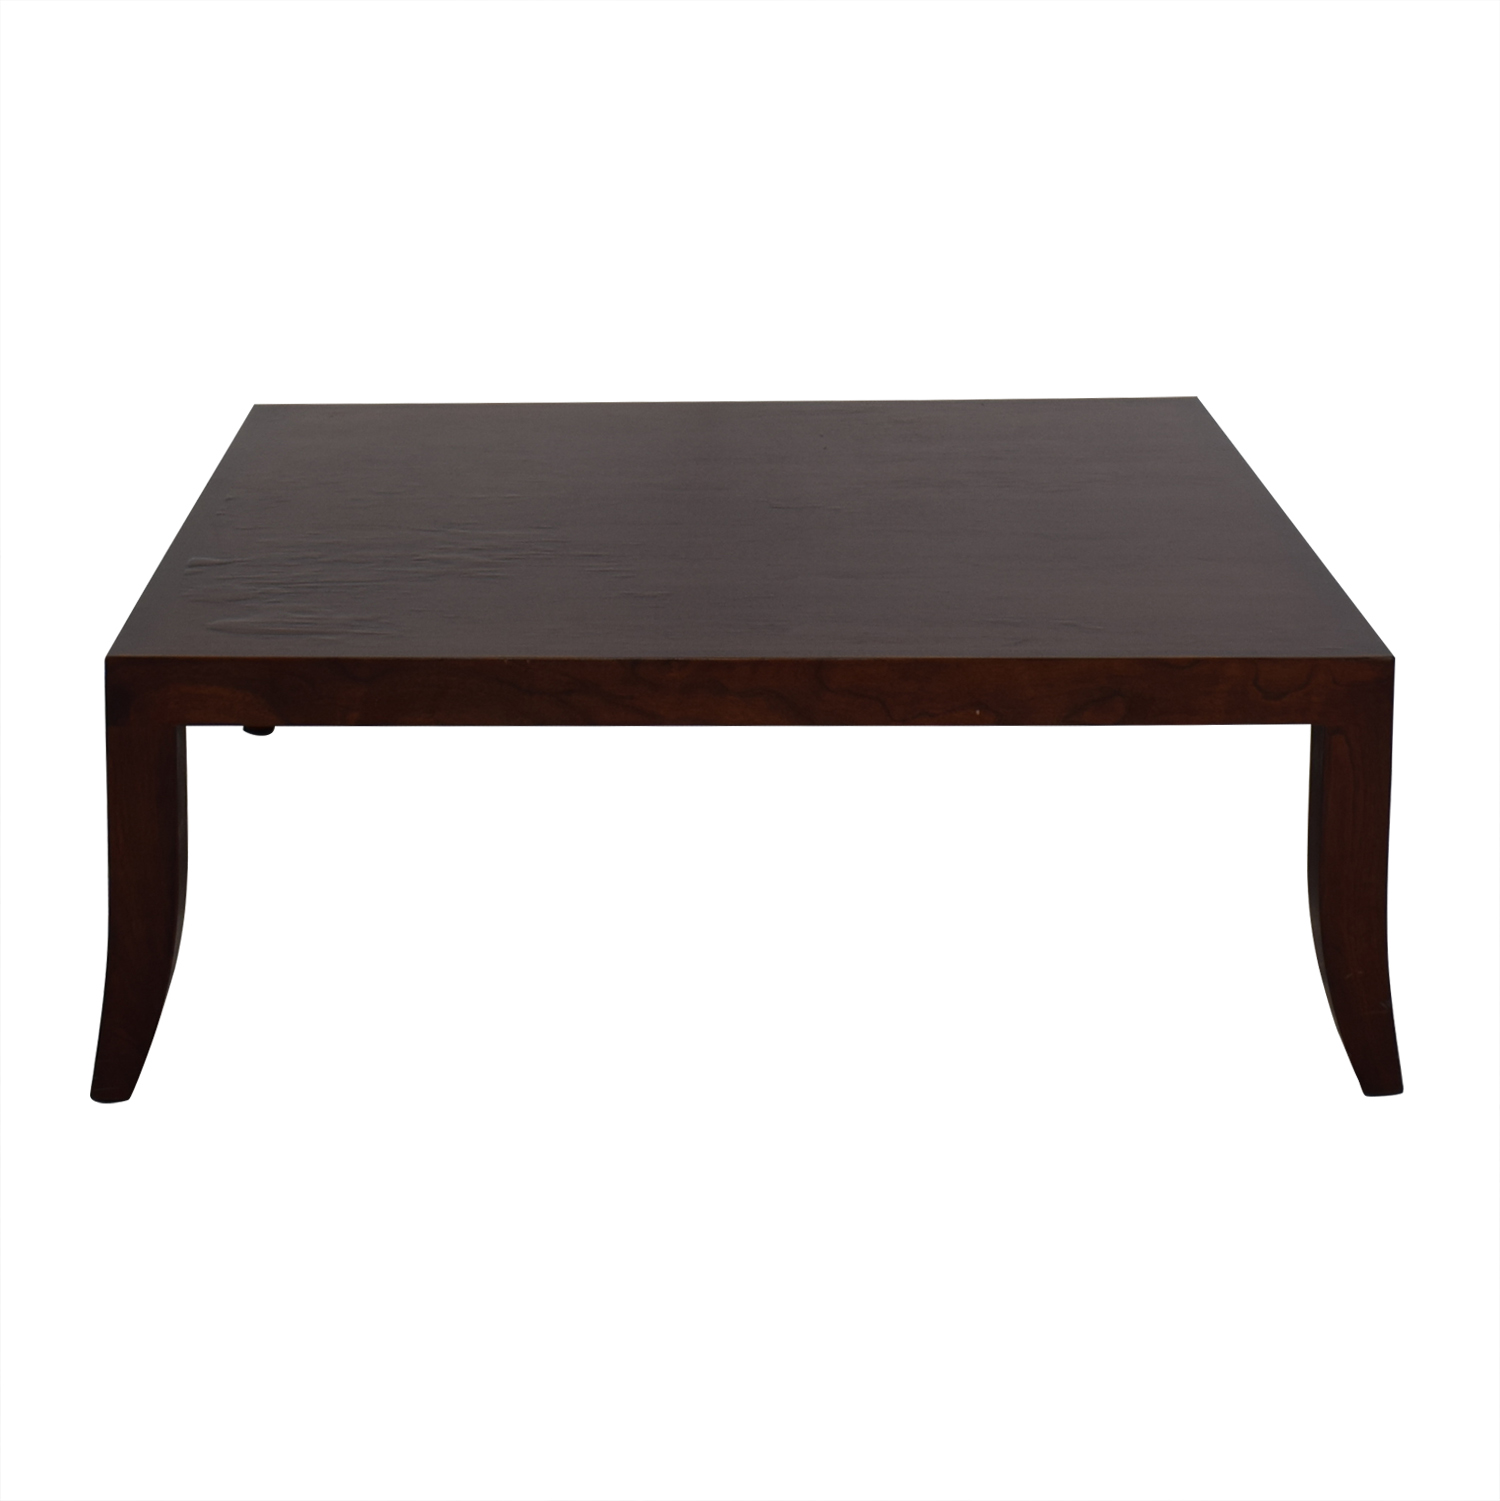 buy A Rudin A Rudin Square Coffee Table online